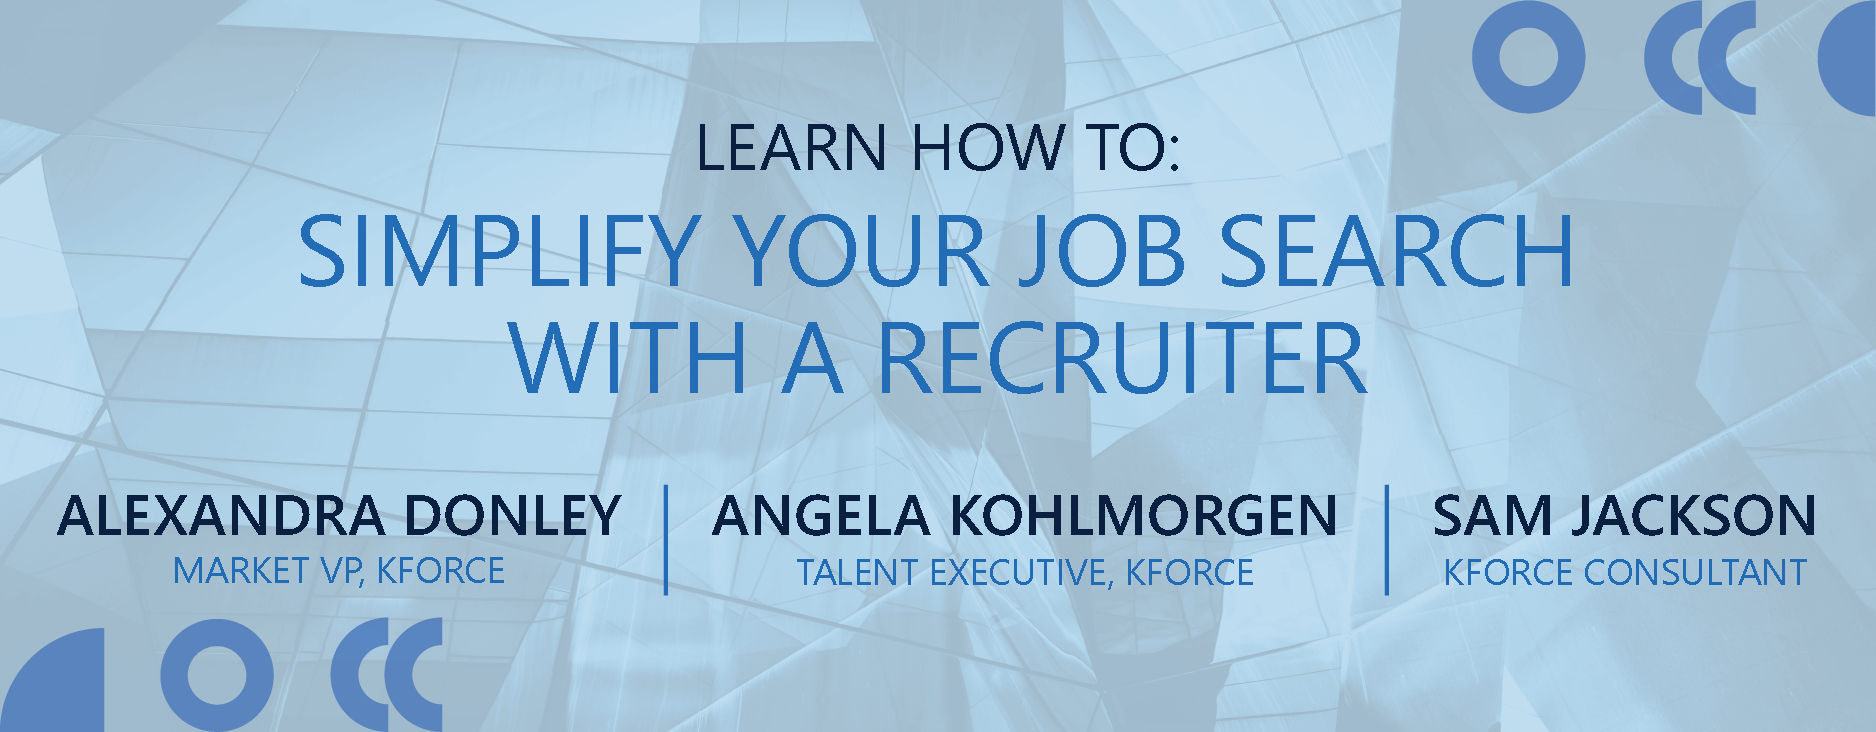 Simplify Your Job Search With a Recruiter